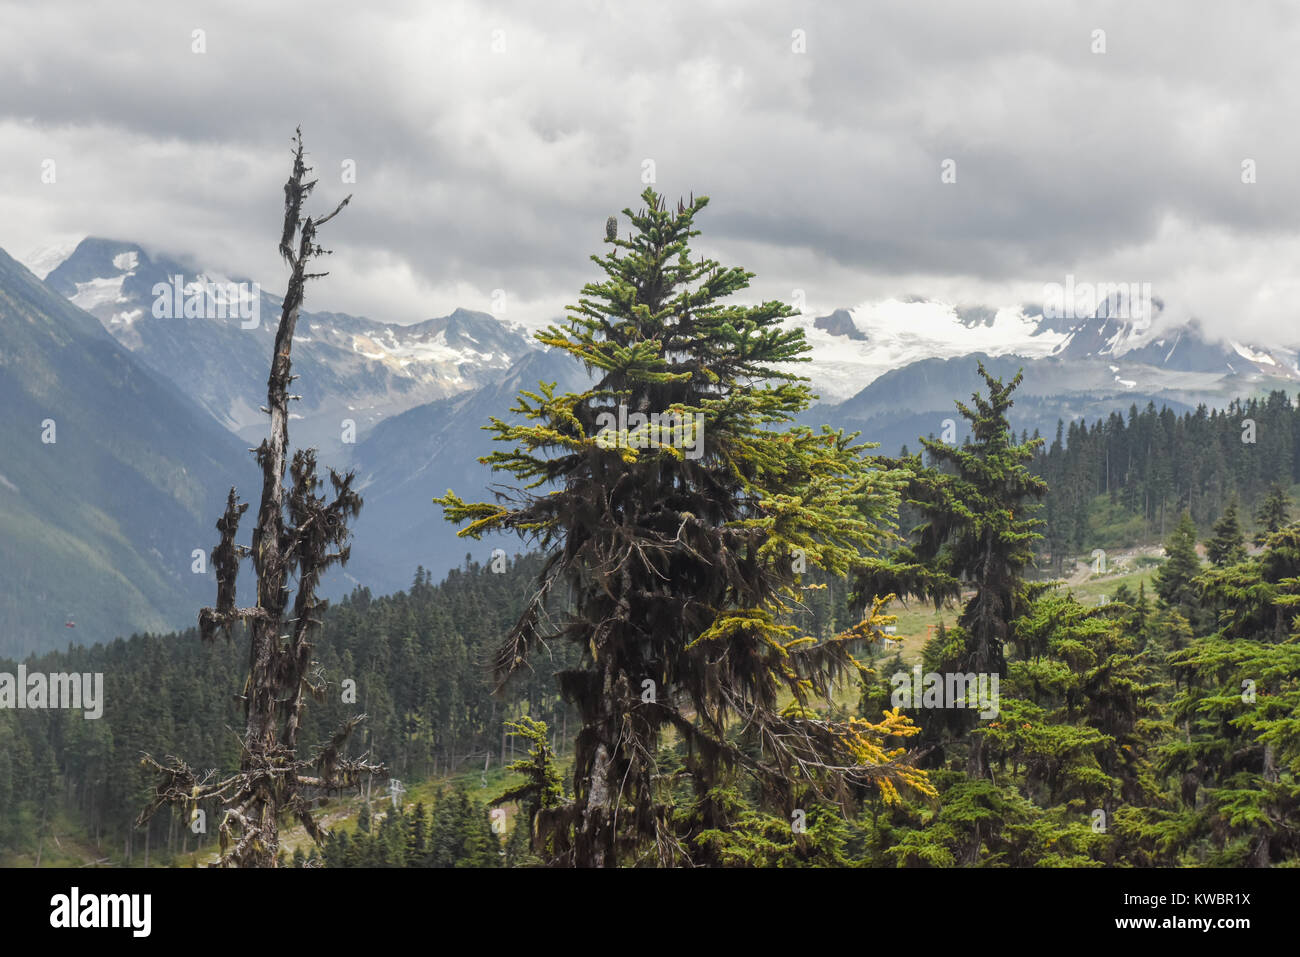 Clouds and fog create changing weather landscapes for skiing and mountain bikers on the Whistler Blackcomb mountains Stock Photo